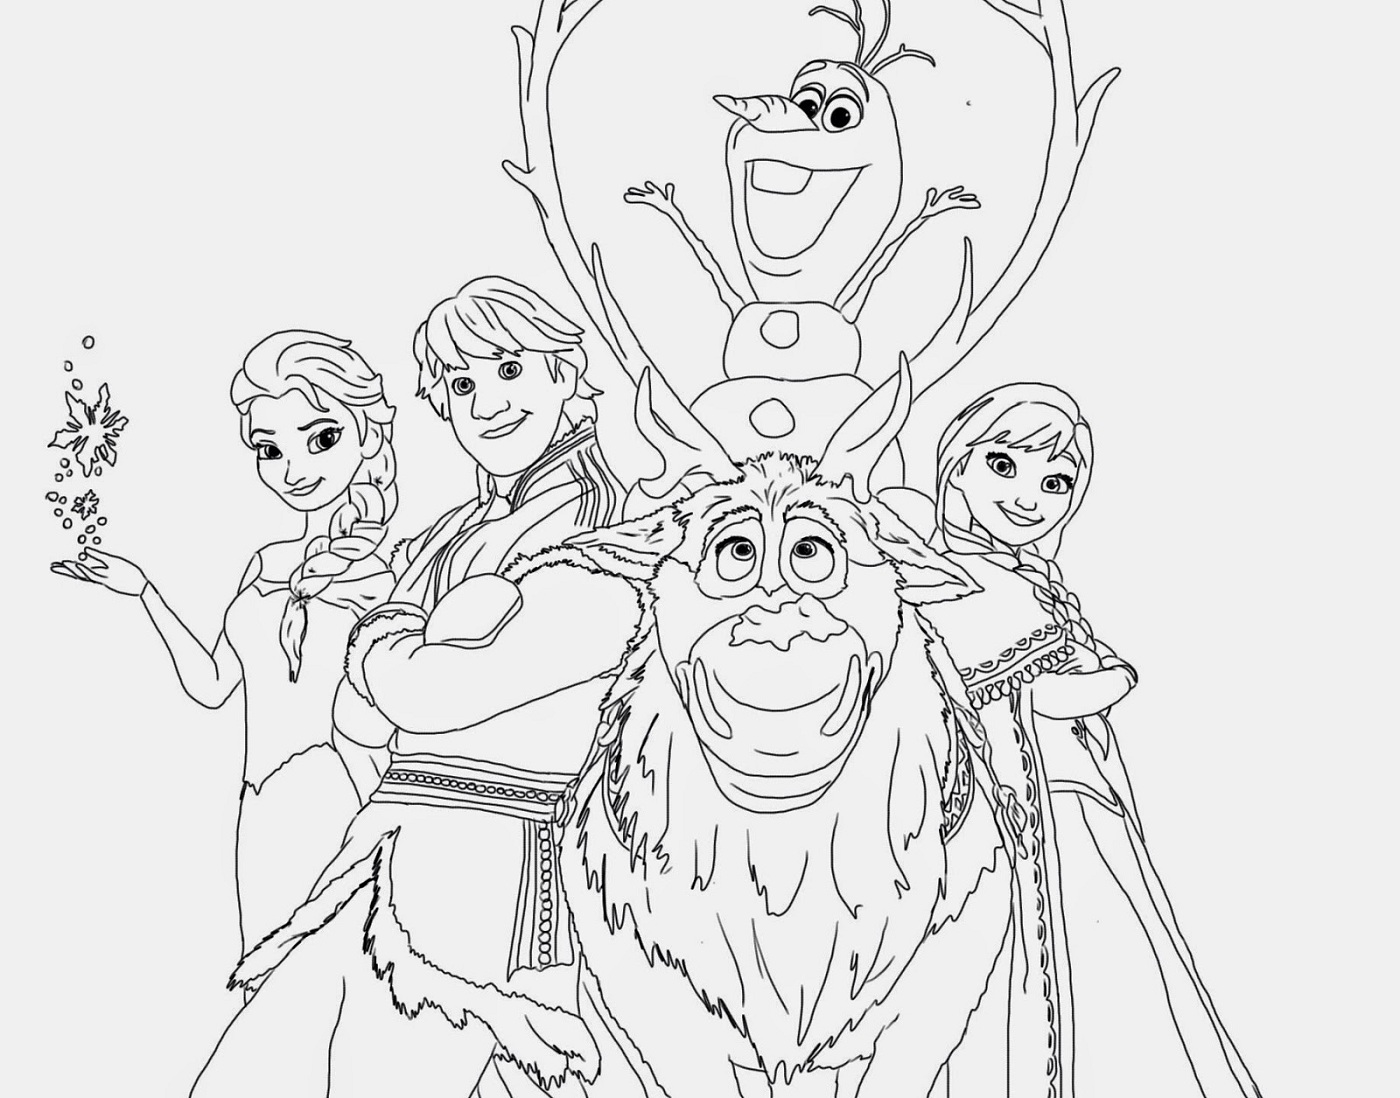 pictures of frozen coloring pages for kids frozen 2 frozen 2 elsa and anna of pictures frozen